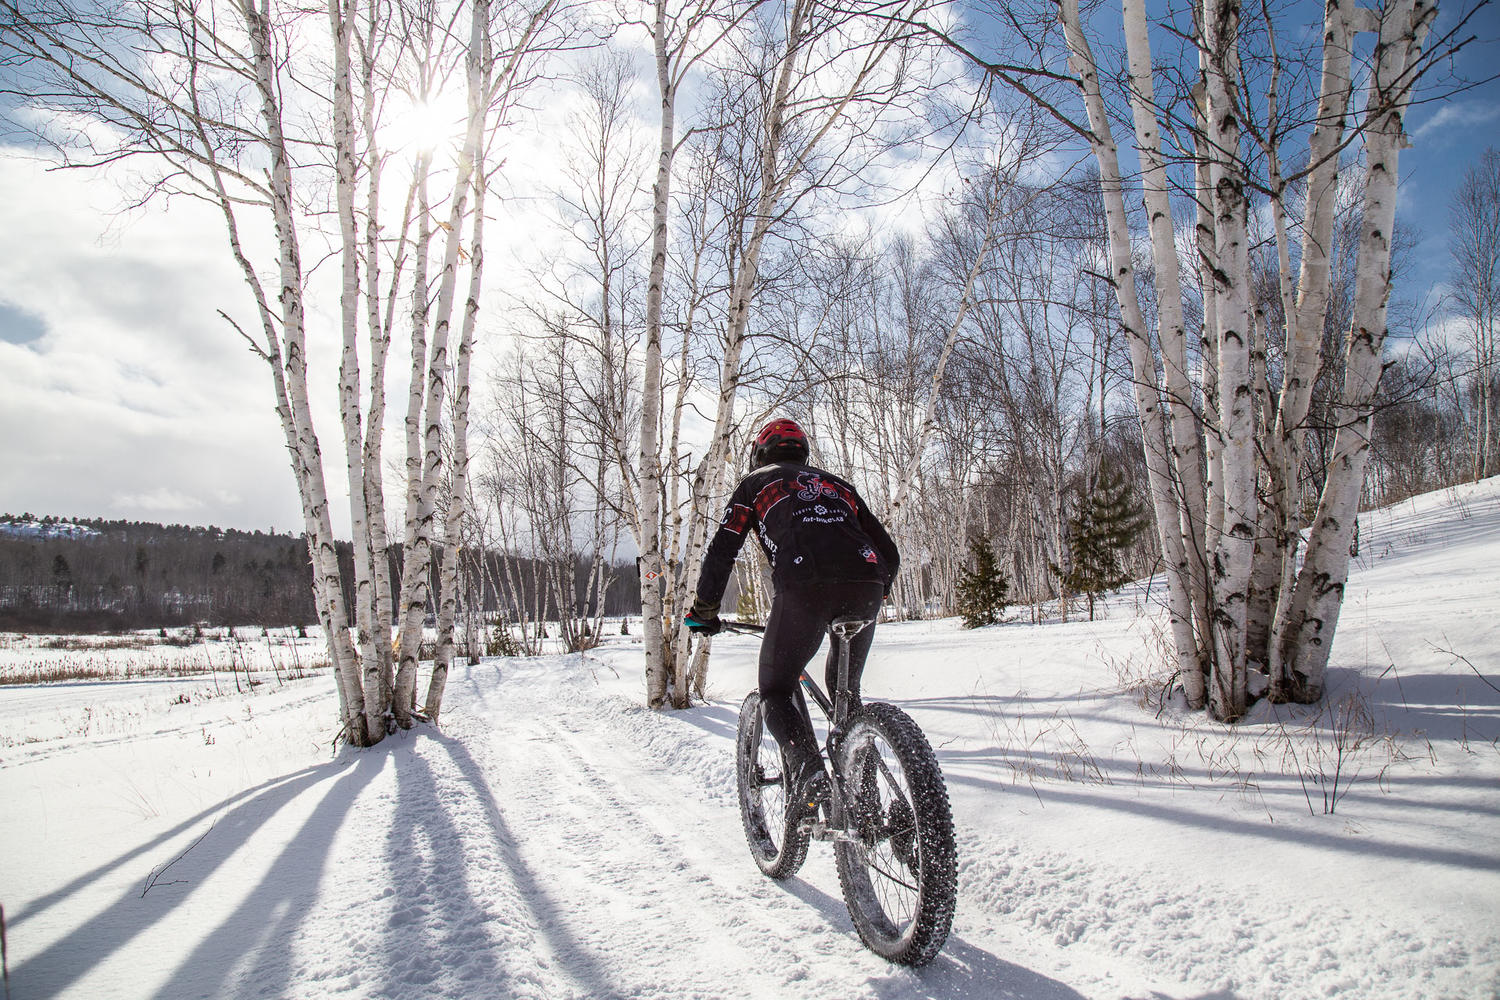 Man on fat bike cycling on snow covered trail surrounded by white birch trees.